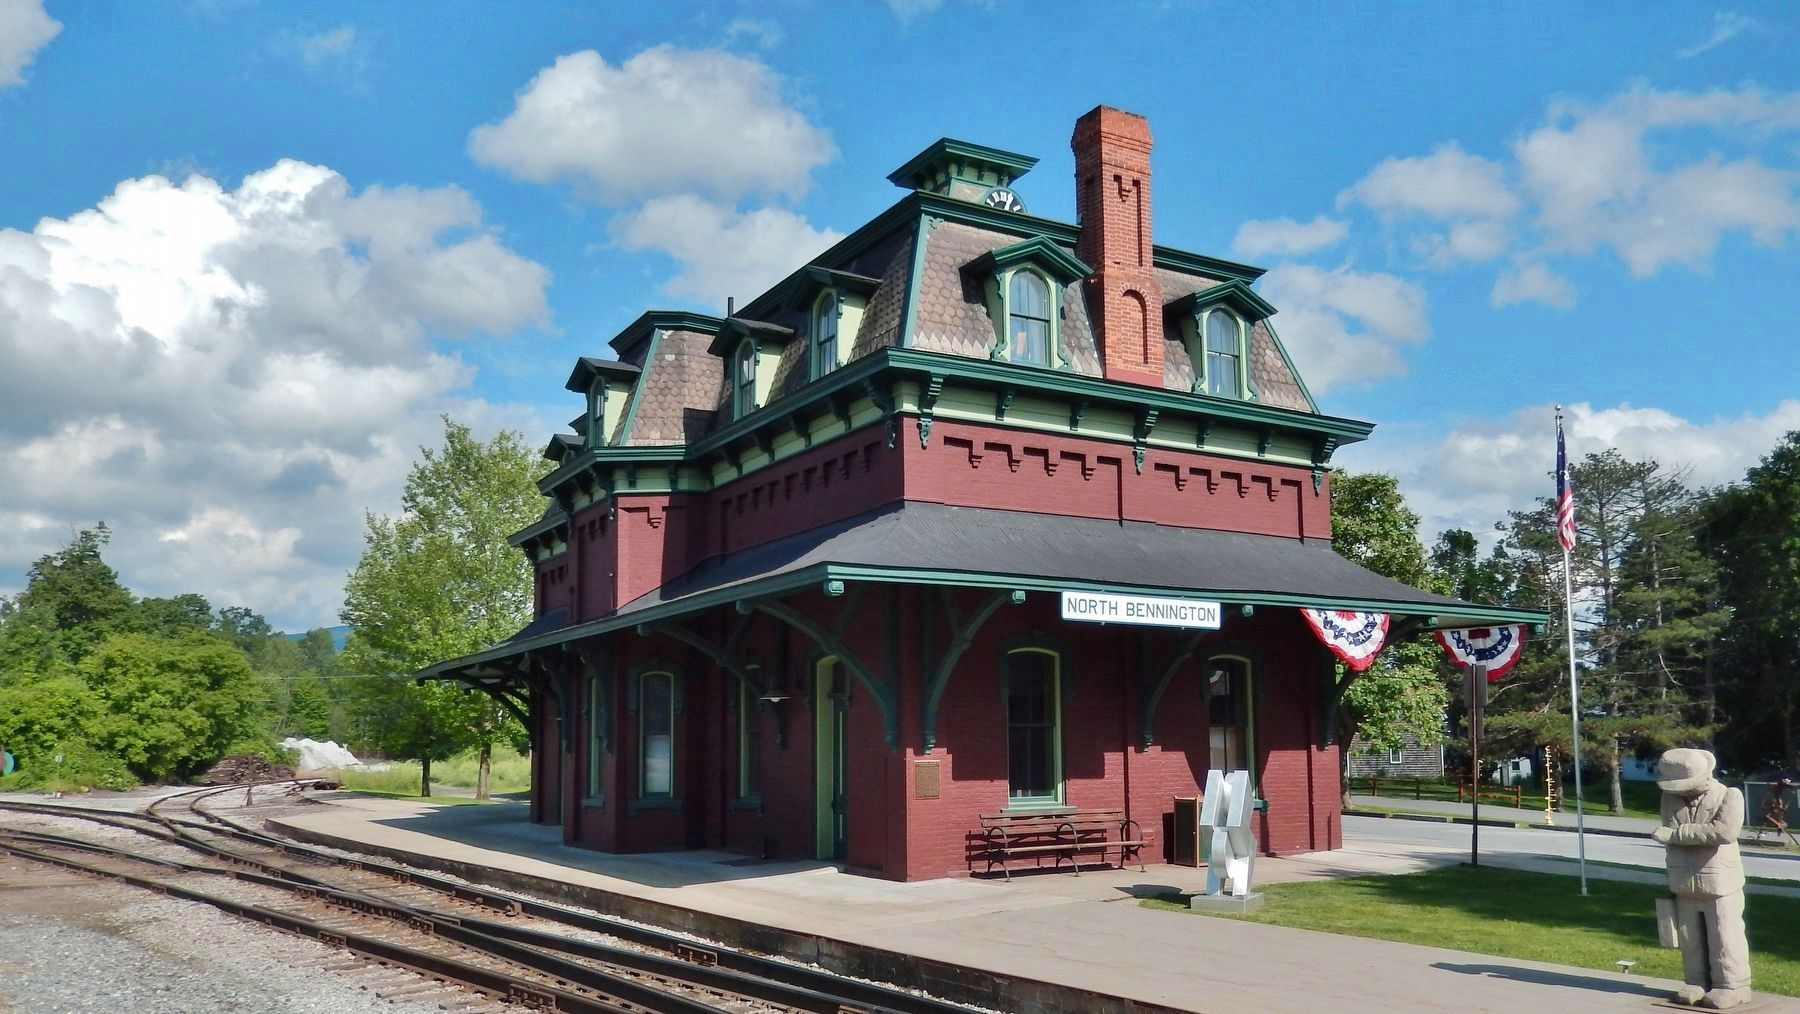 North Bennington Railroad Station (<i>view from railroad tracks; modern sculpture front & right</i>) image. Click for full size.